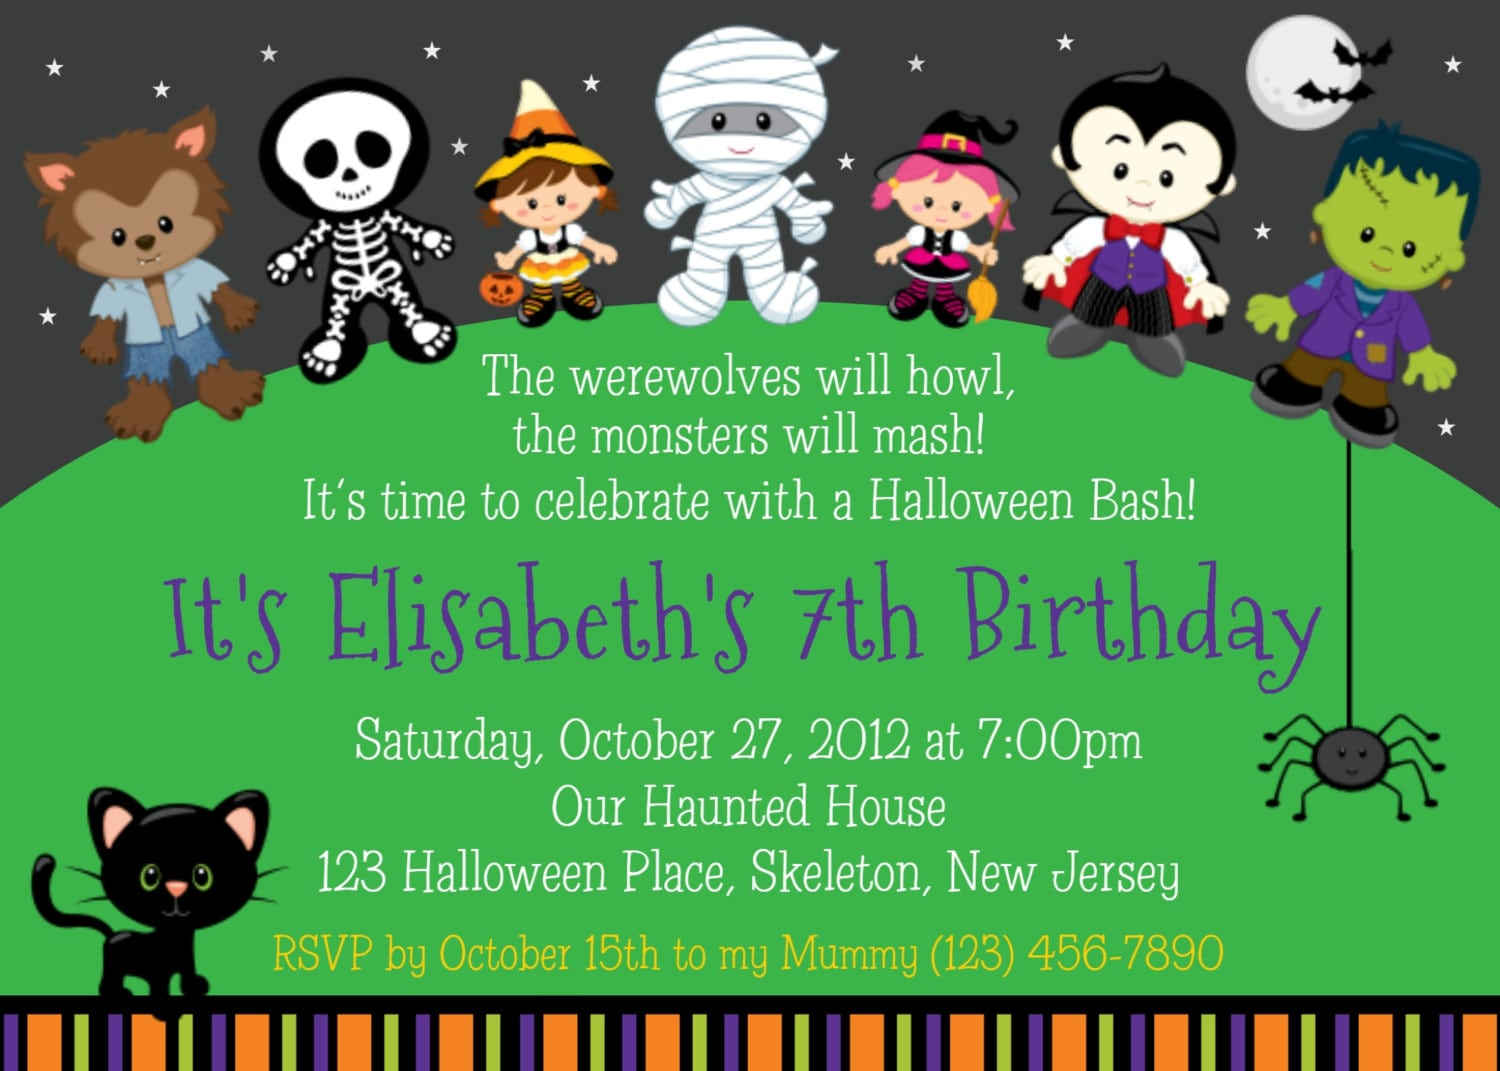 Cute Halloween Party Invitations Fabulous Cute Halloween Party